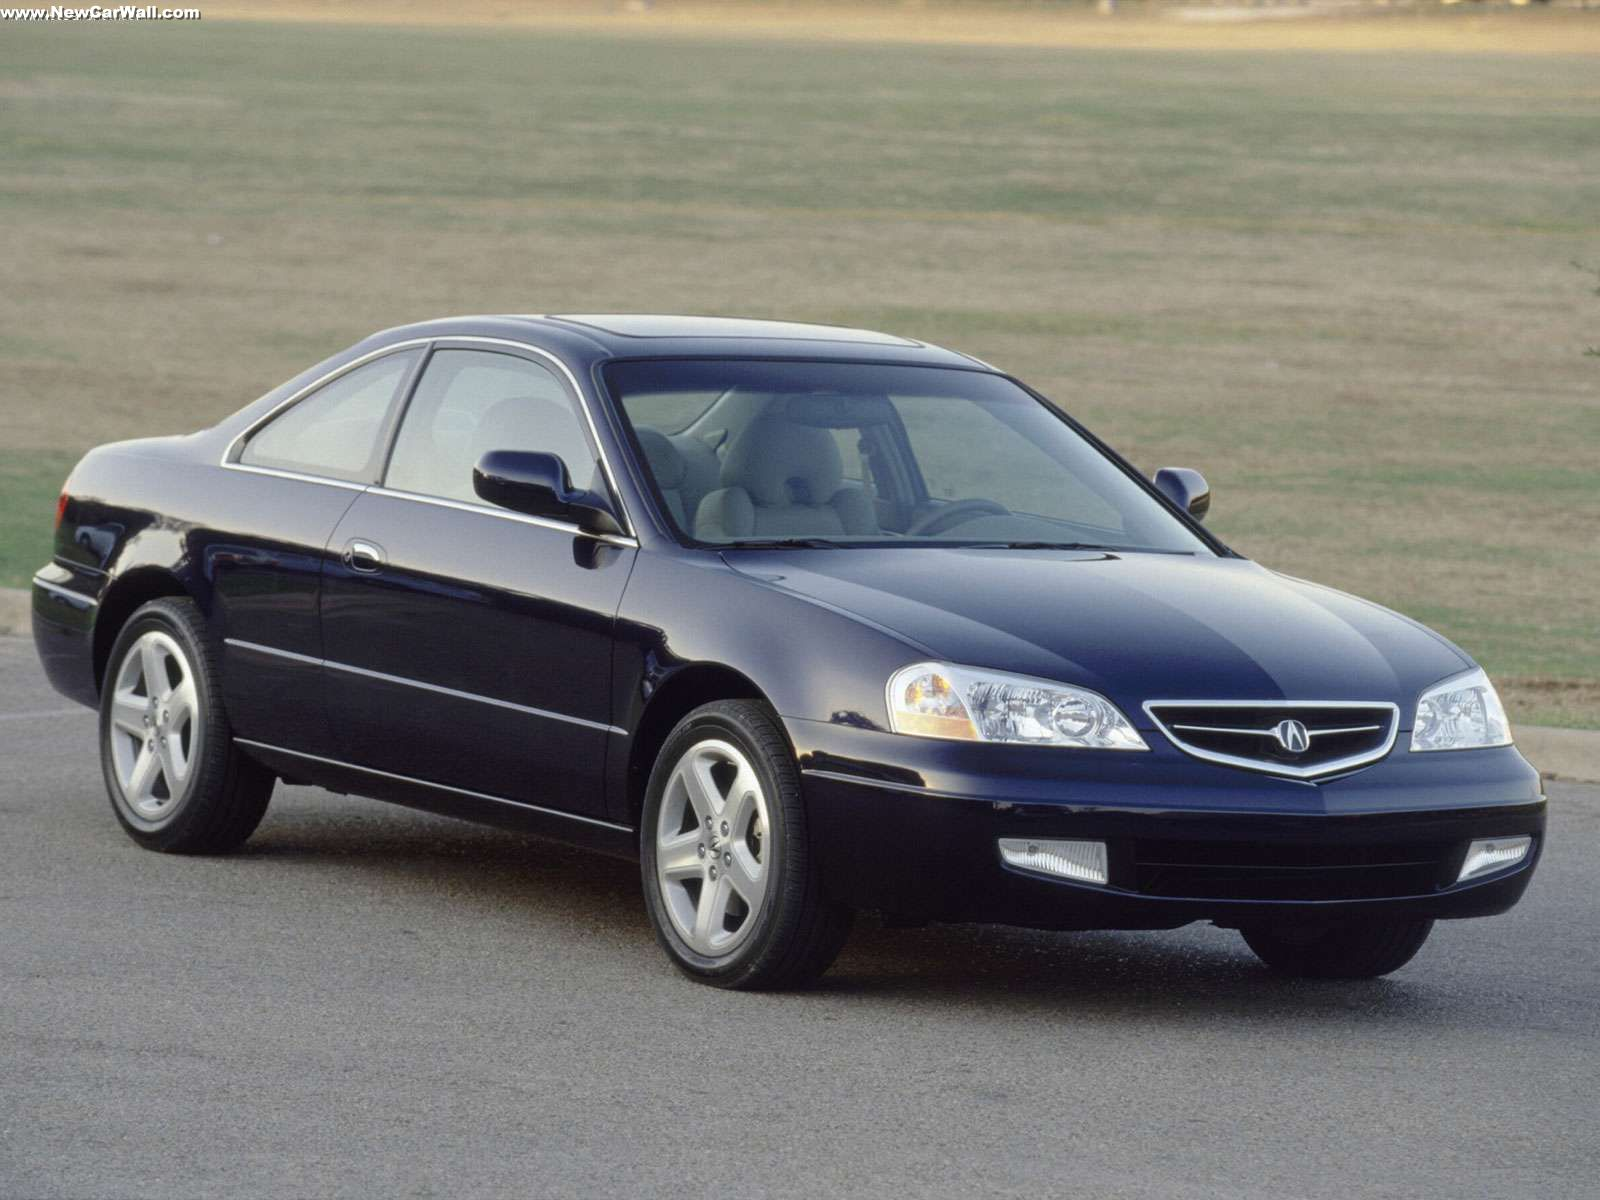 2001 Acura Tl 3 2 >> Acura 3 2 Cl Wallpaper Image Pictures And Wallpapers 2001 Acura